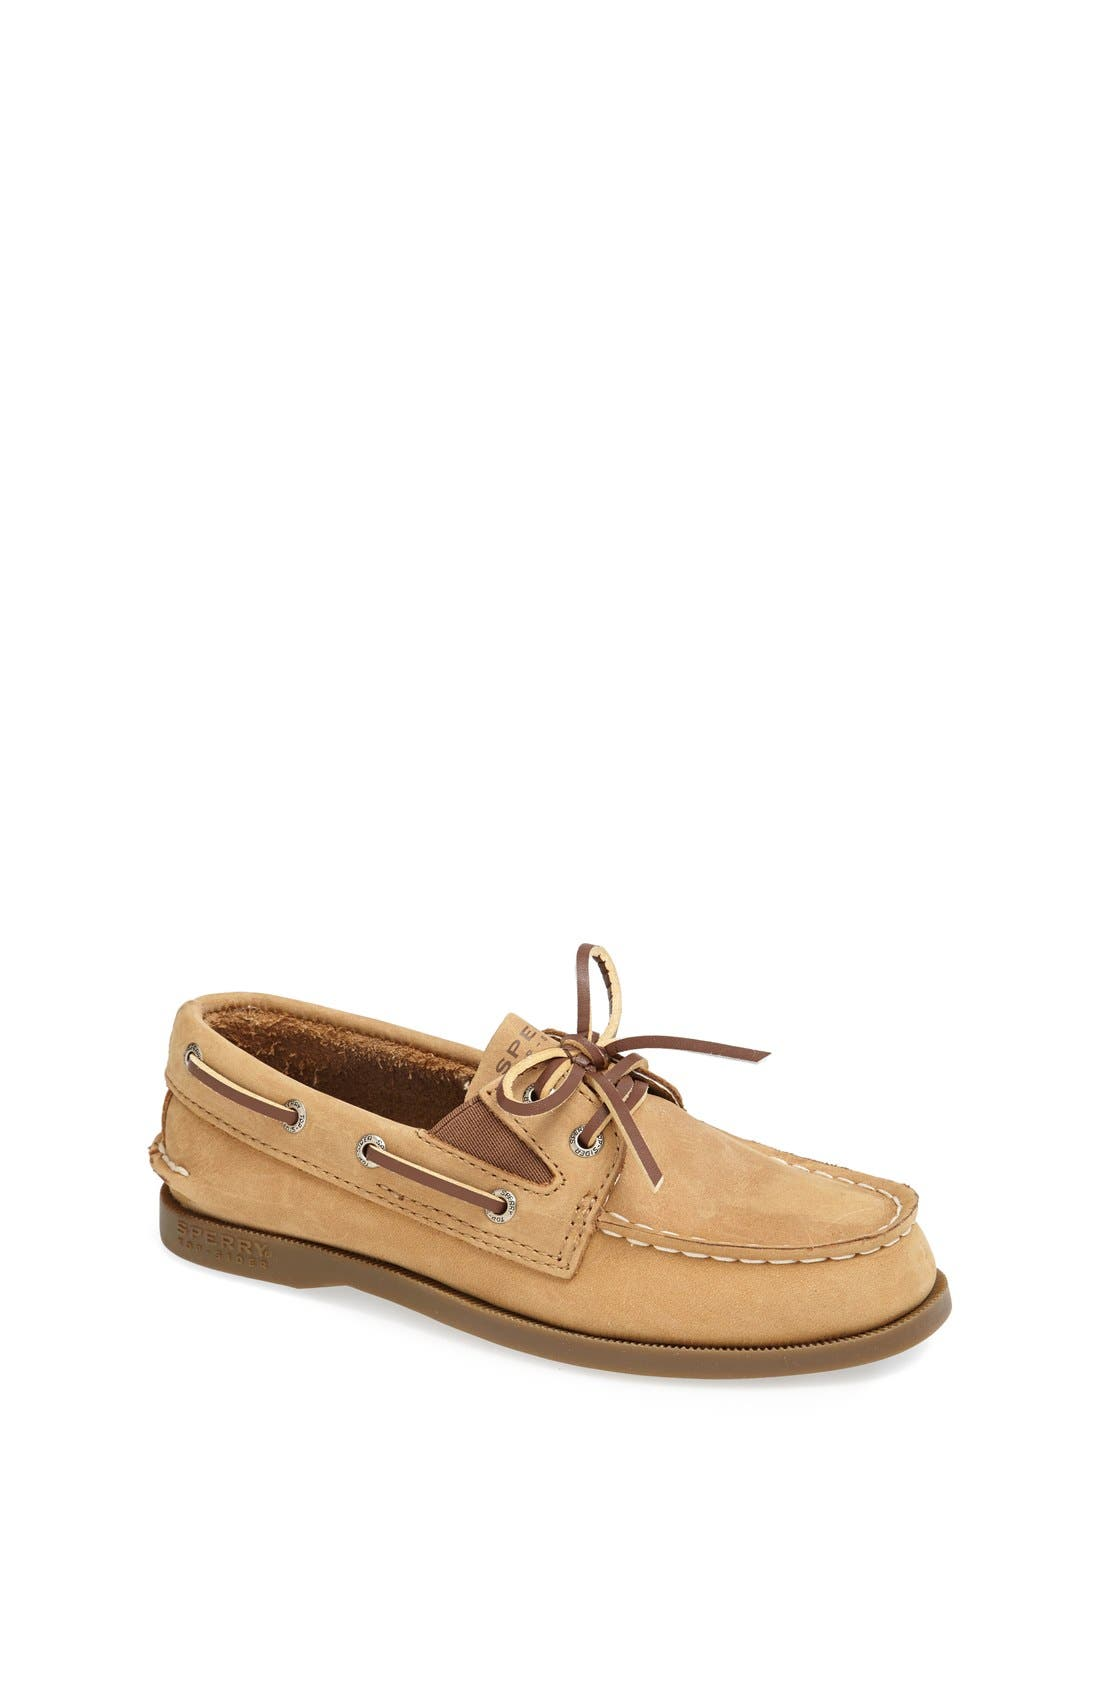 Main Image - Sperry Kids 'Authentic Original' Boat Shoe (Walker, Toddler, Little Kid & Big Kid)